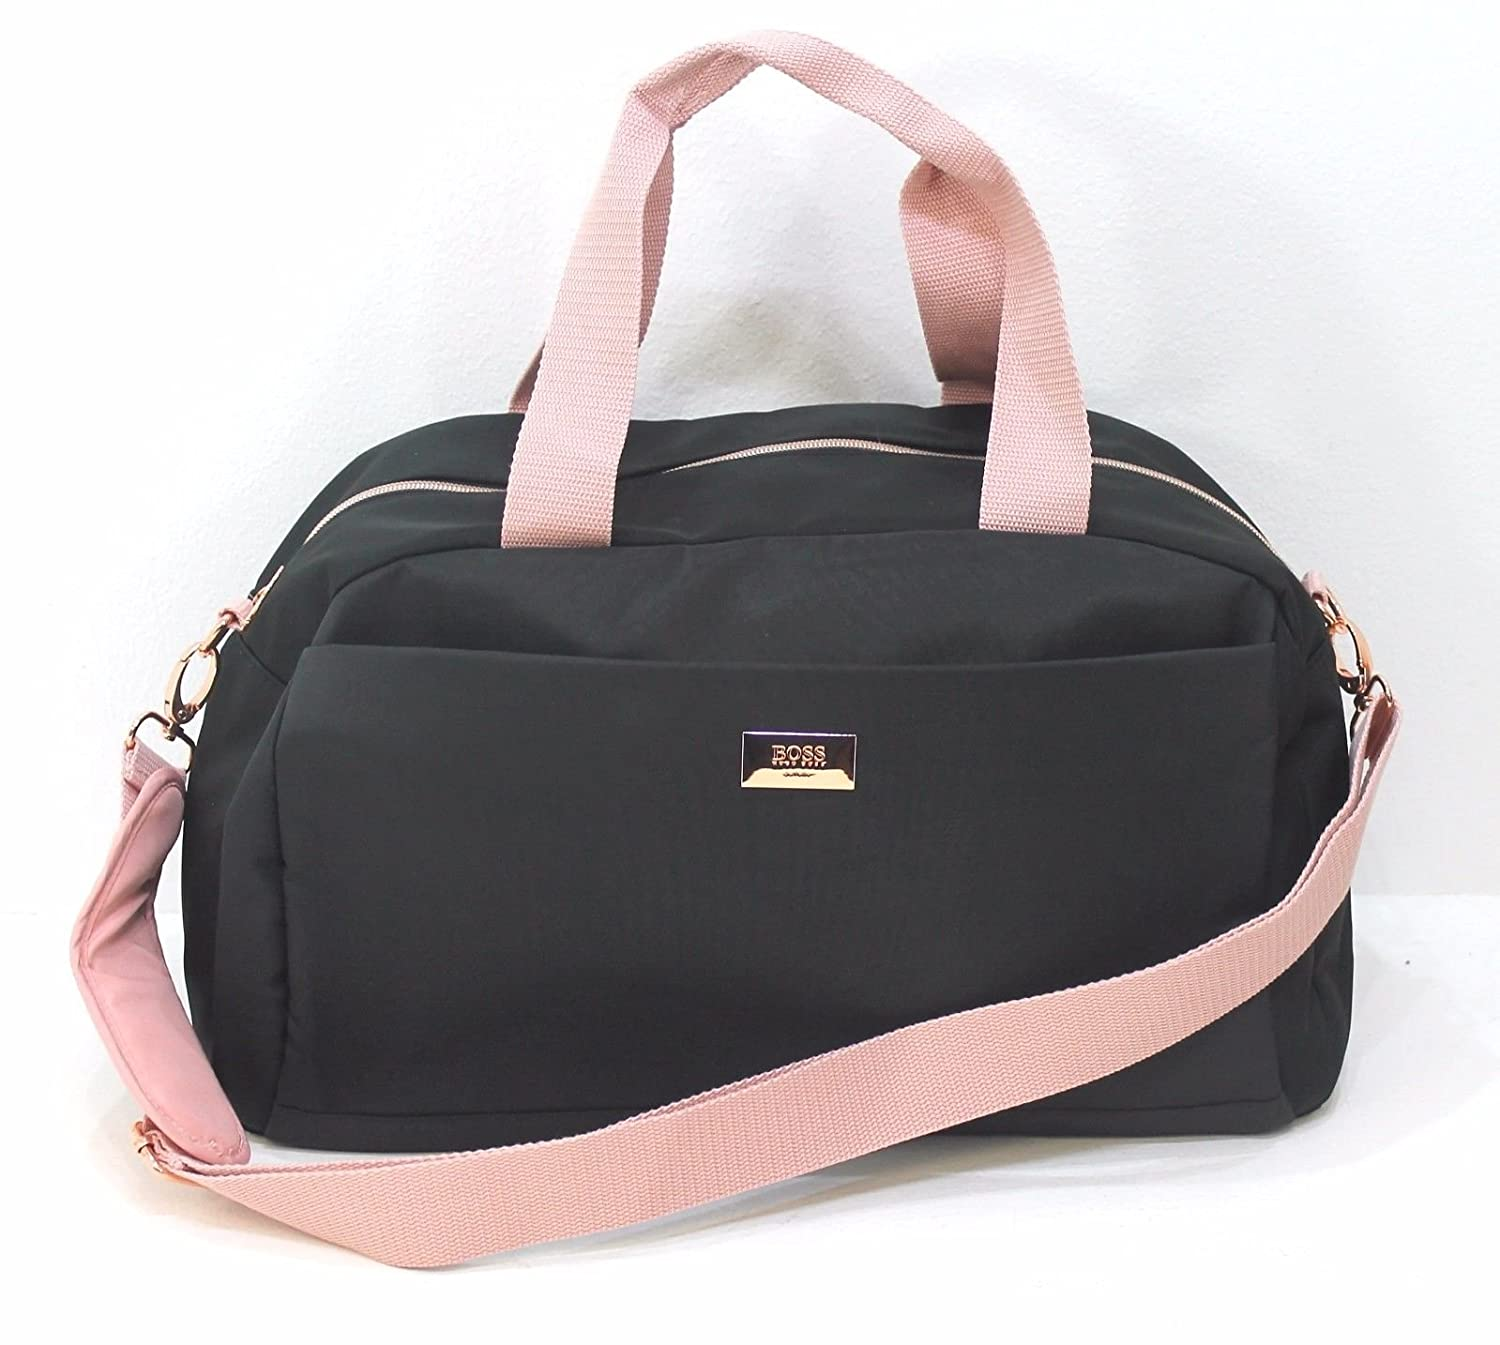 cc96c62ffbcb HUGO BOSS LADIES PINK AND BLACK DESIGNER GYM BAG CASUAL OVERNIGHT WEEKEND  TRAVEL BAG